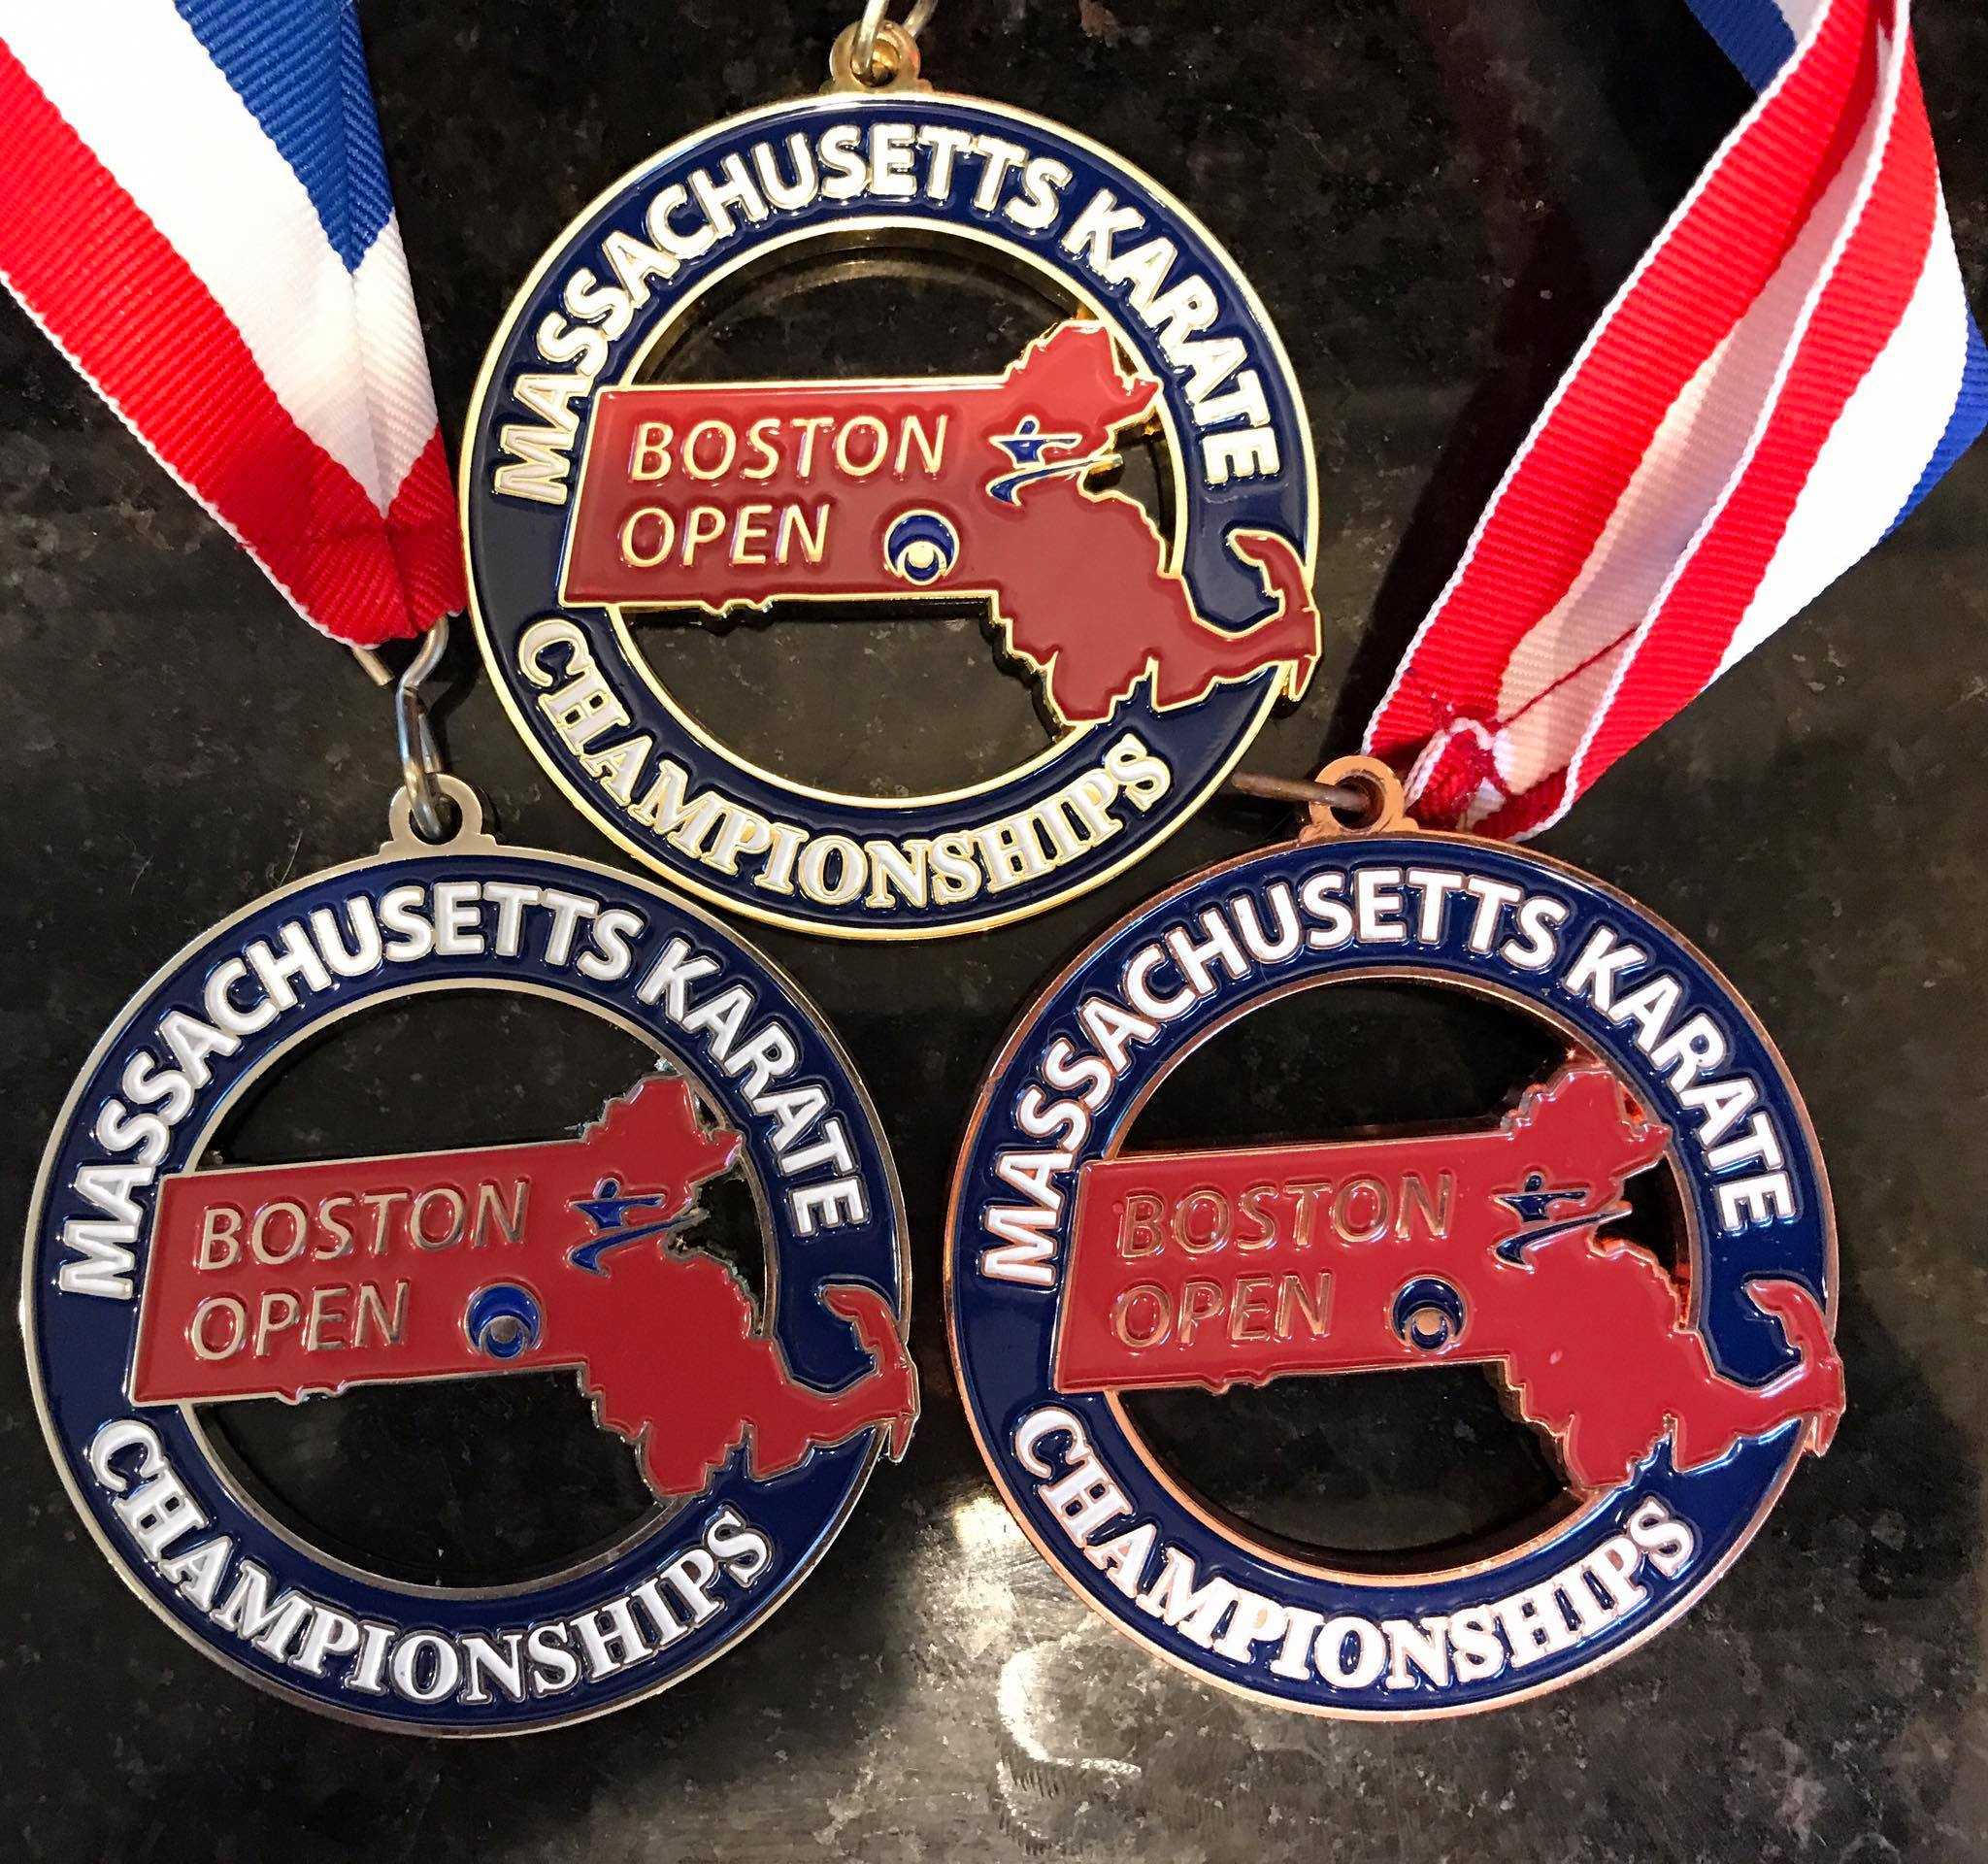 Boston-open-medals